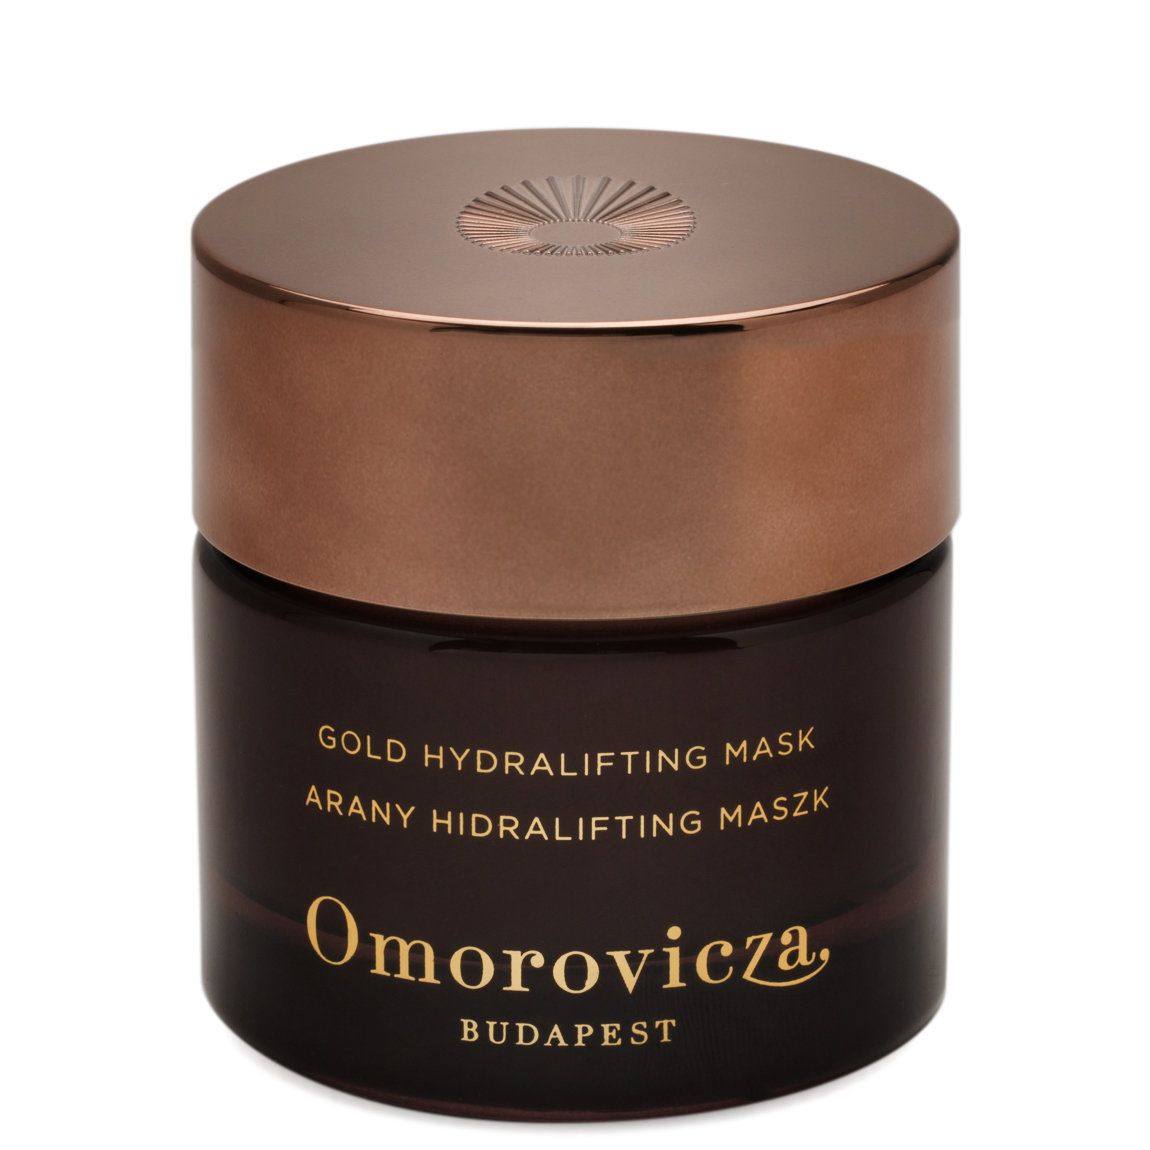 Omorovicza Gold Hydralifting Mask alternative view 1 - product swatch.